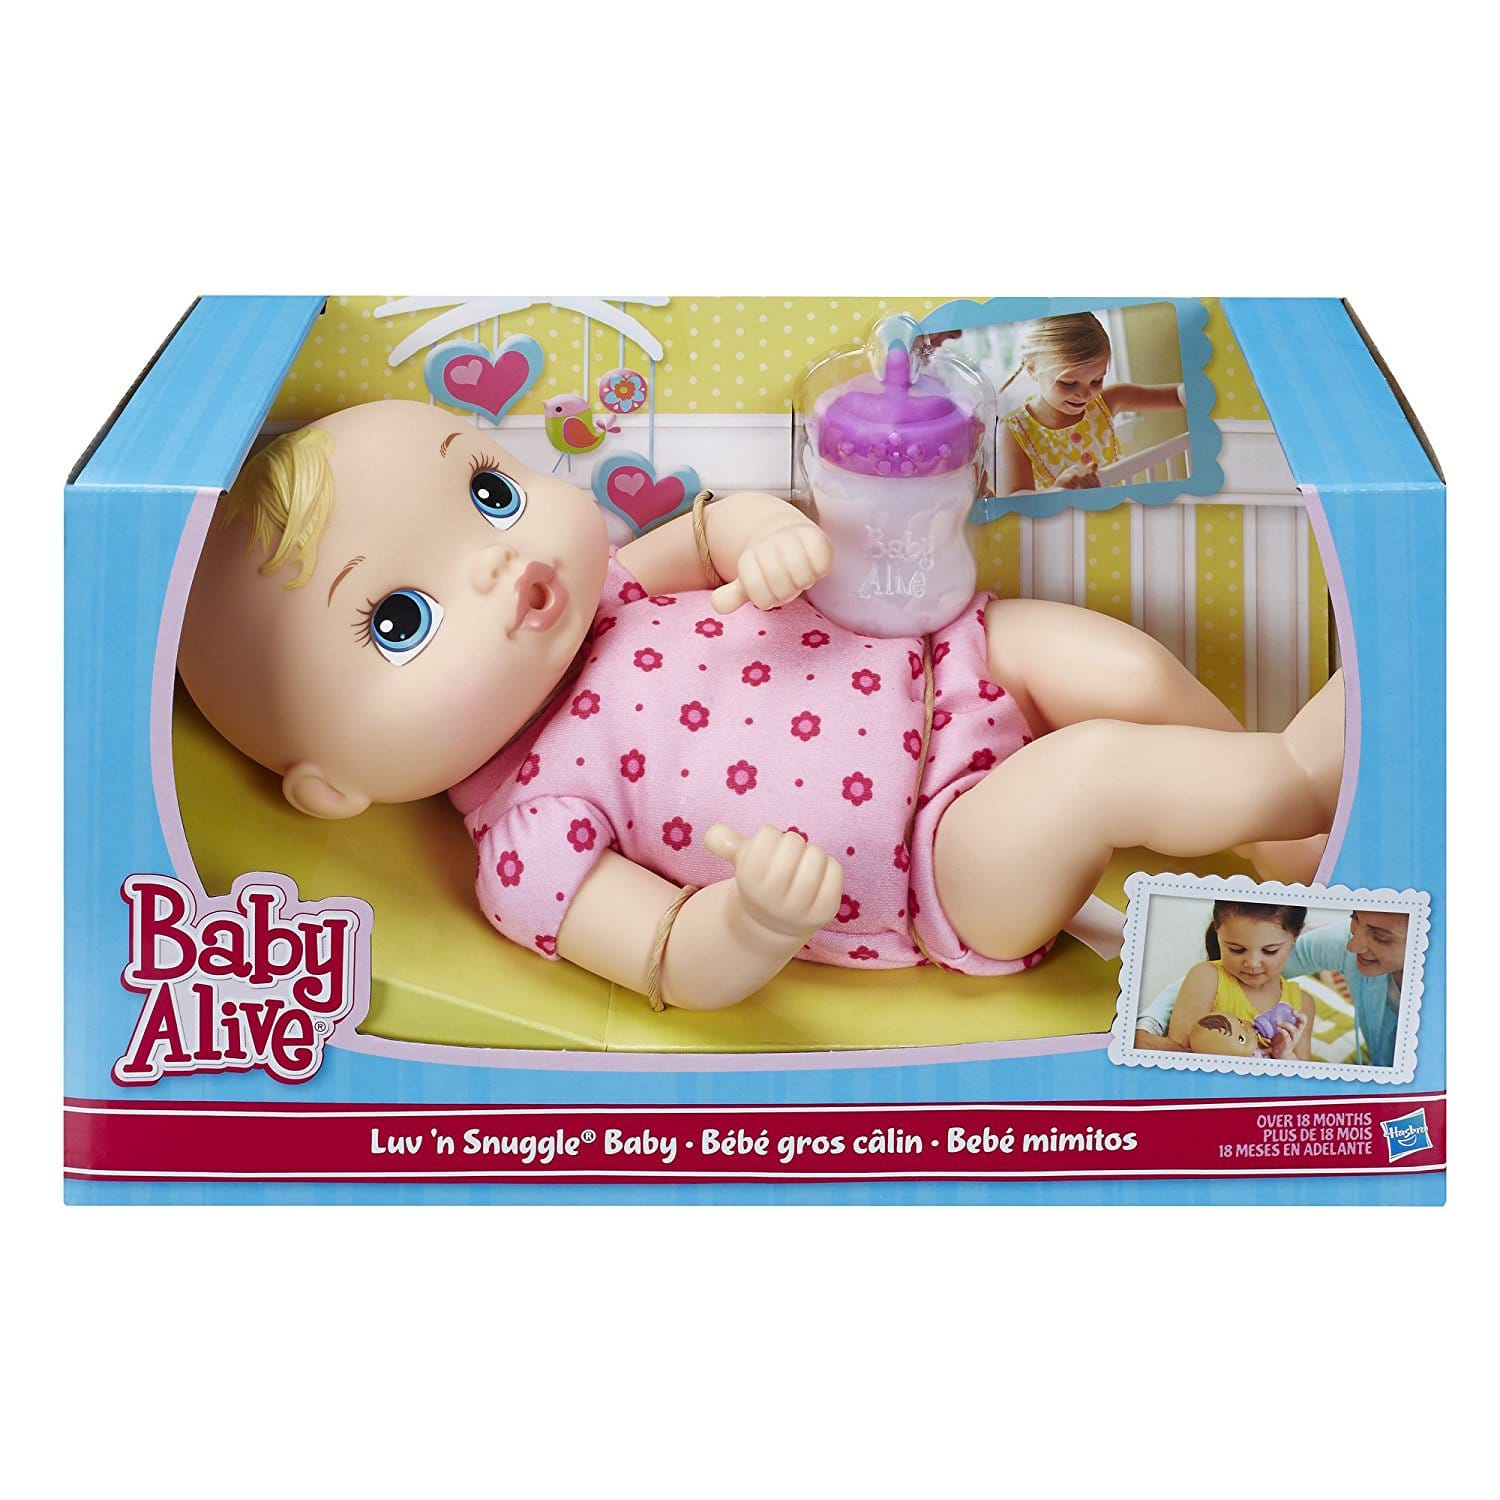 Baby Alive Luv 'n Snuggle Baby (Blonde or Brunette) for $6.74 + Free Shipping